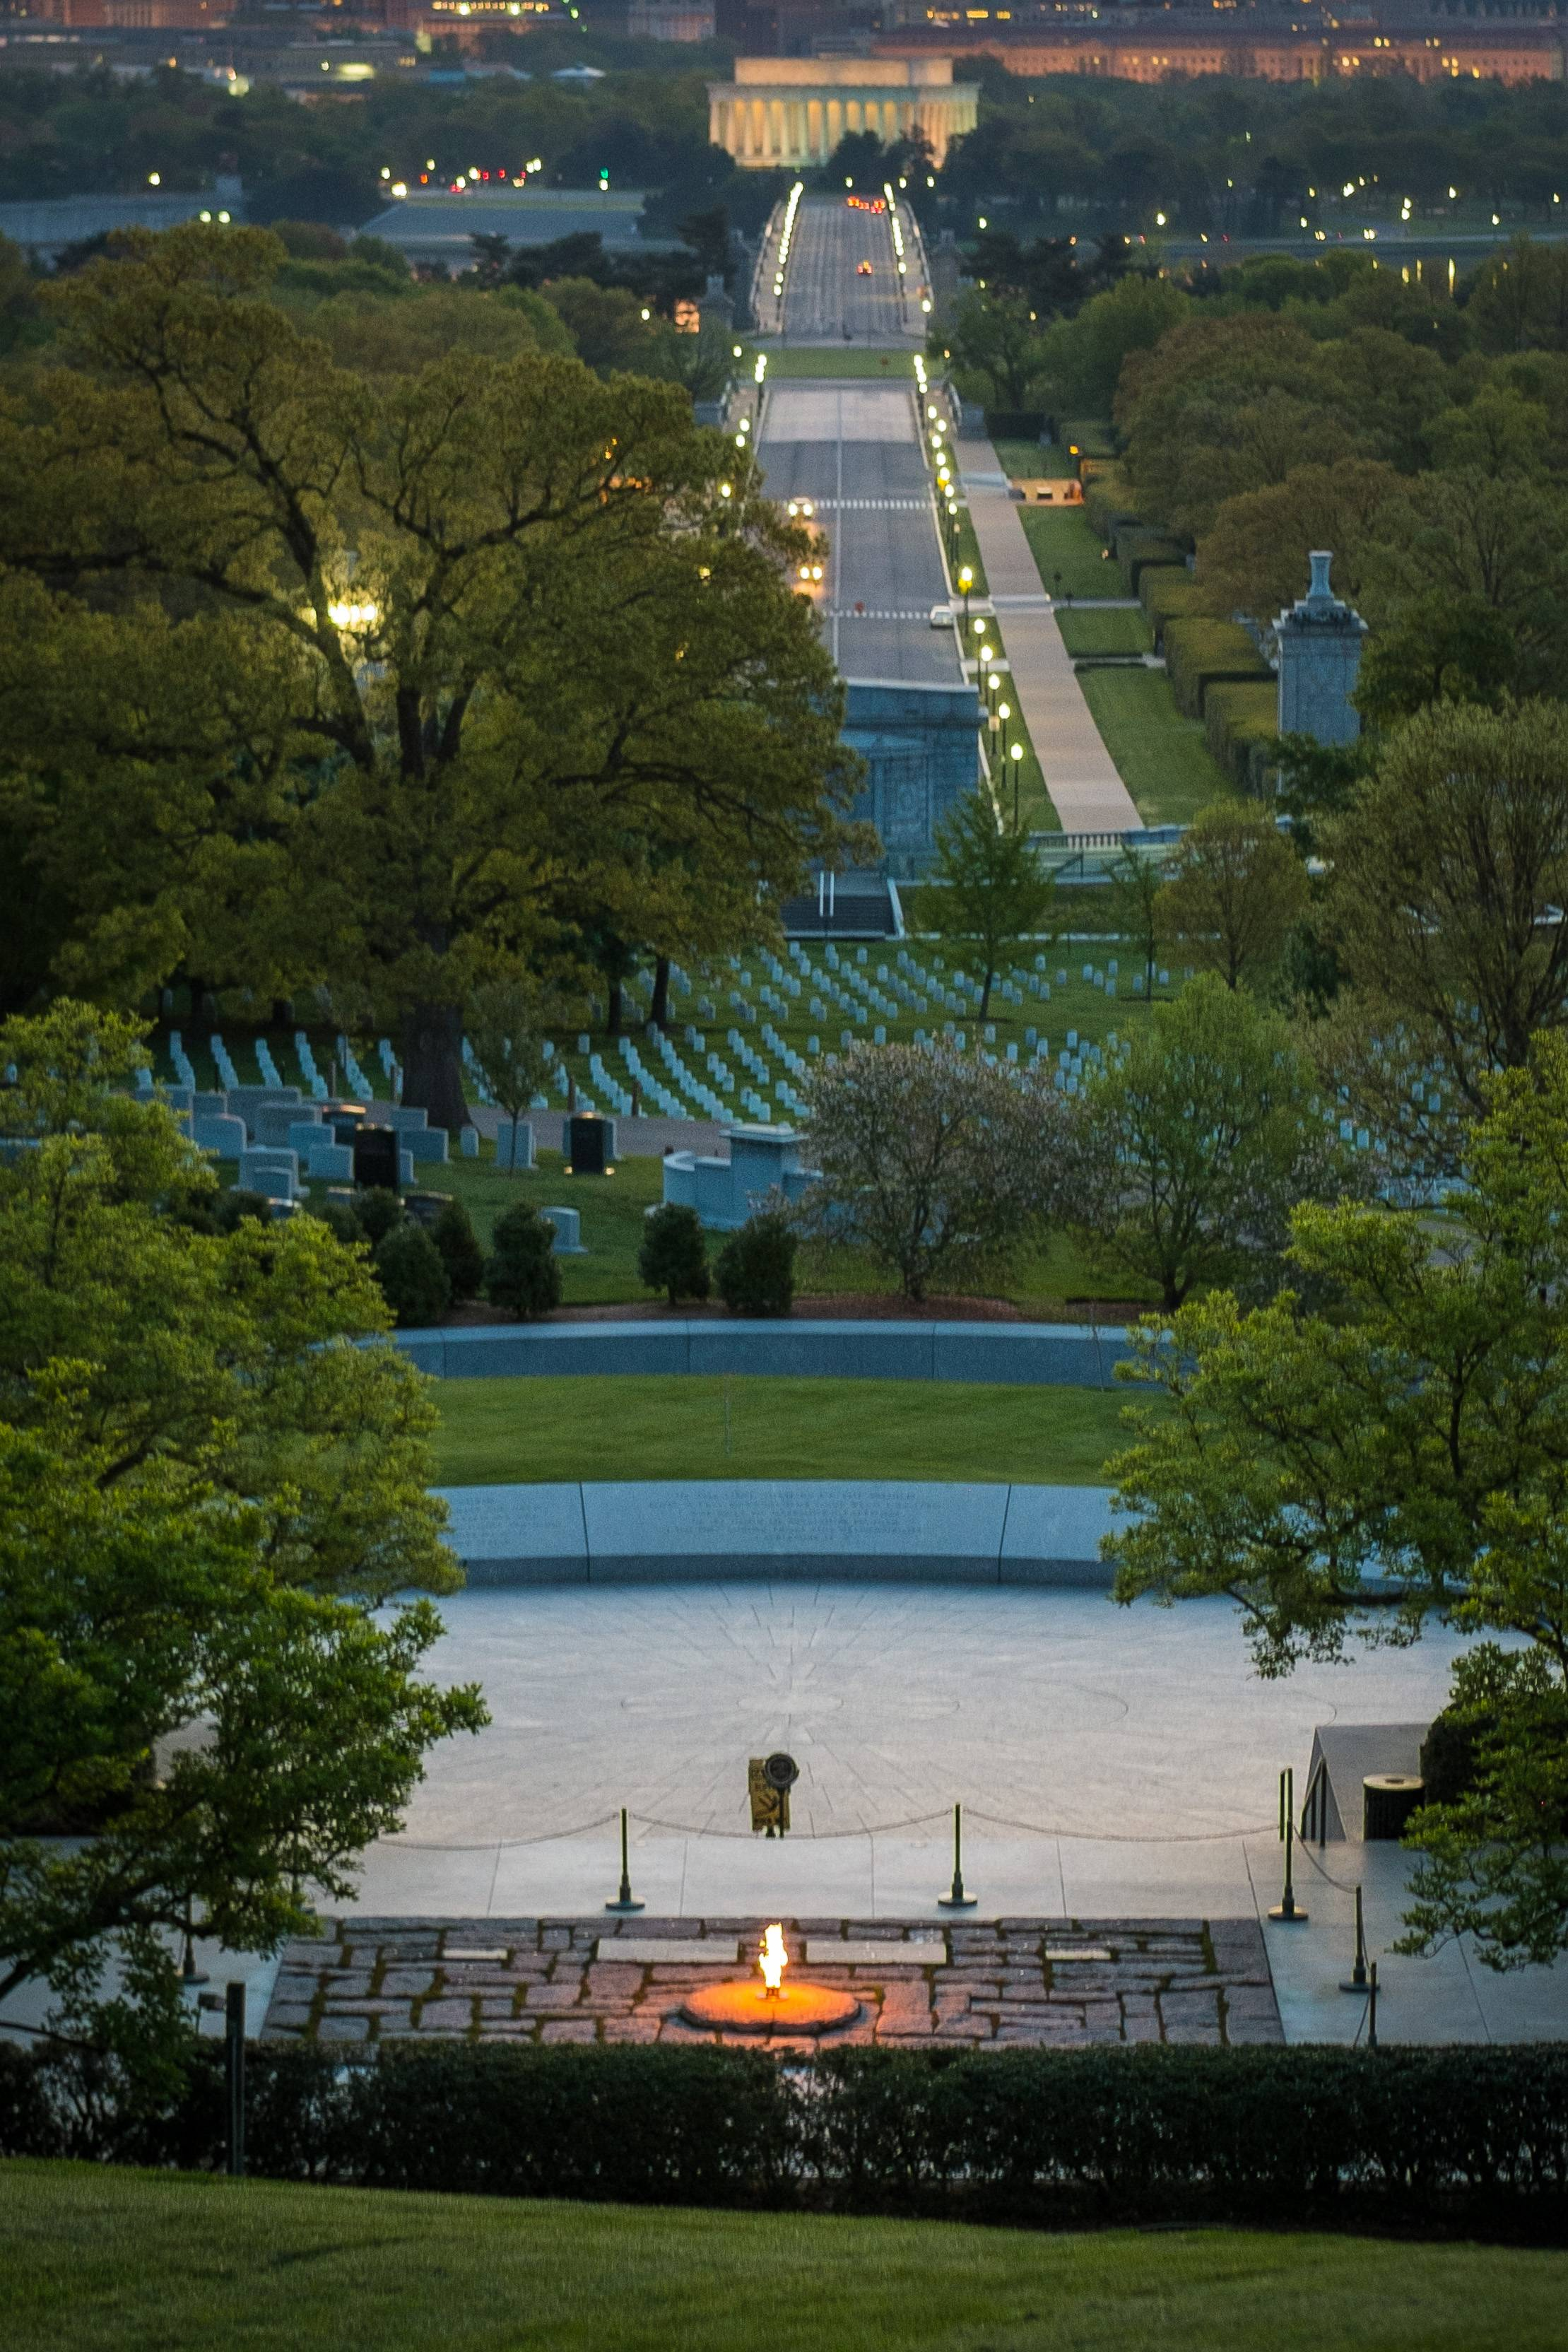 The eternal flame marks the burial site of President John F. Kennedy at Arlington National Cemetery in Arlington, Va.